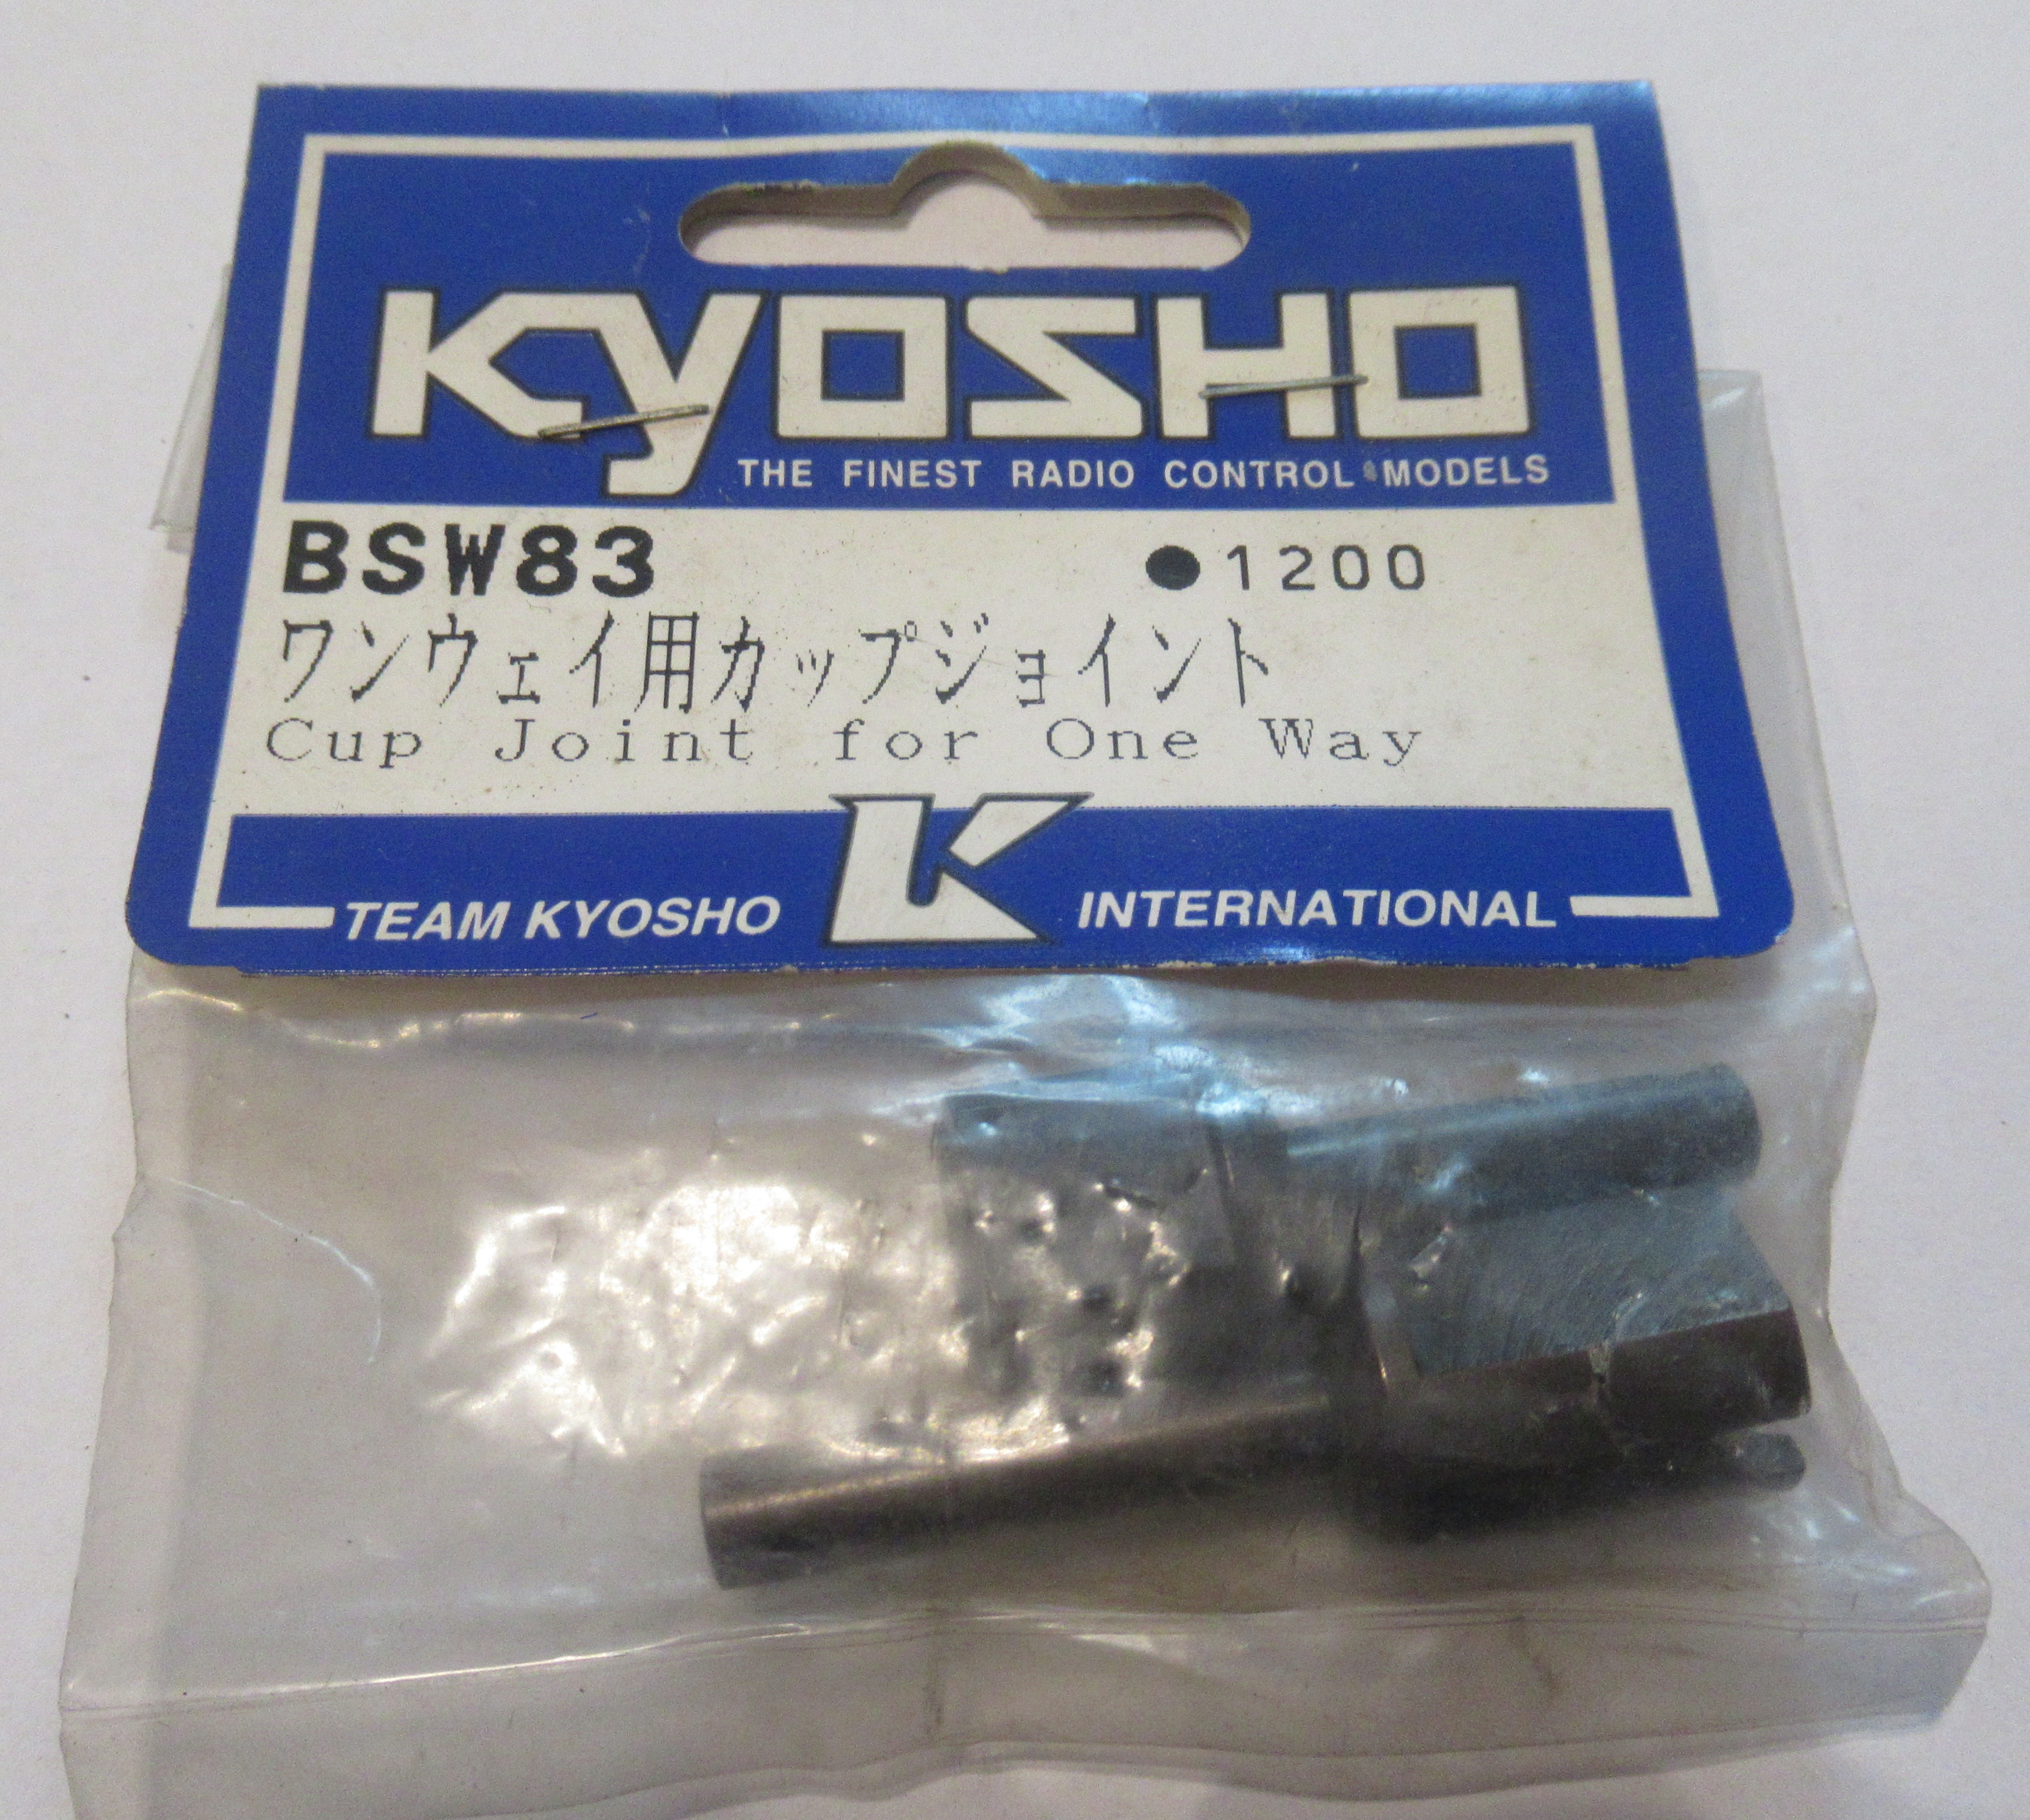 Kyosho BSW83 Cup Joint for One Way